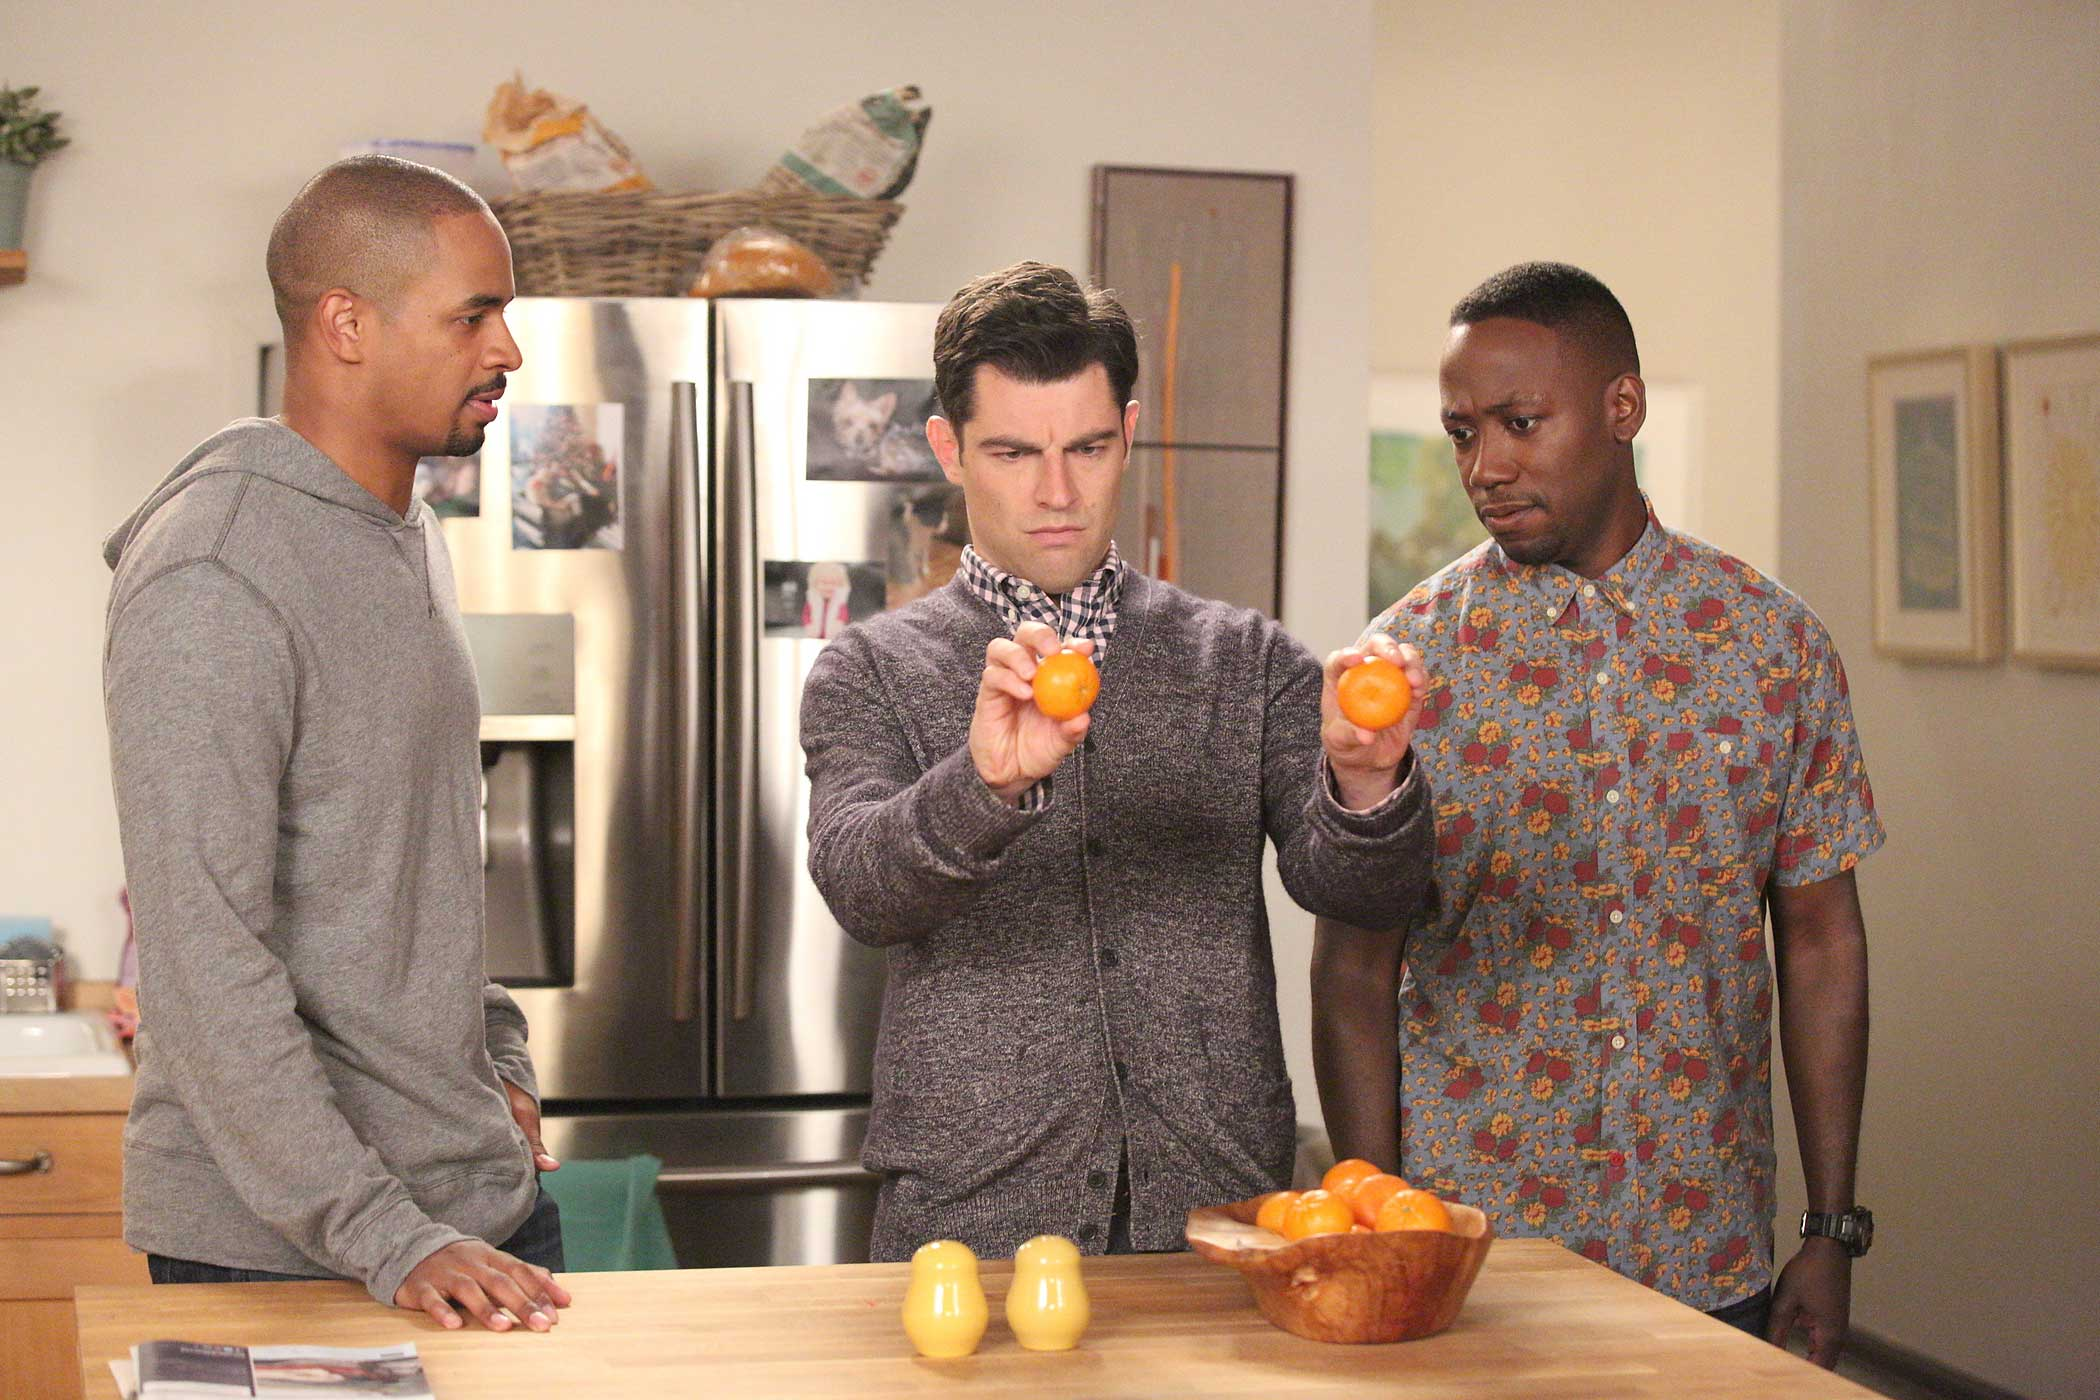 Schmidt (Max Greenfield, center), Coach (Damon Wayans, Jr., left) and Winston (Lamorne Morris) visit their neighbors in the  Goldmine  episode of New Girl.